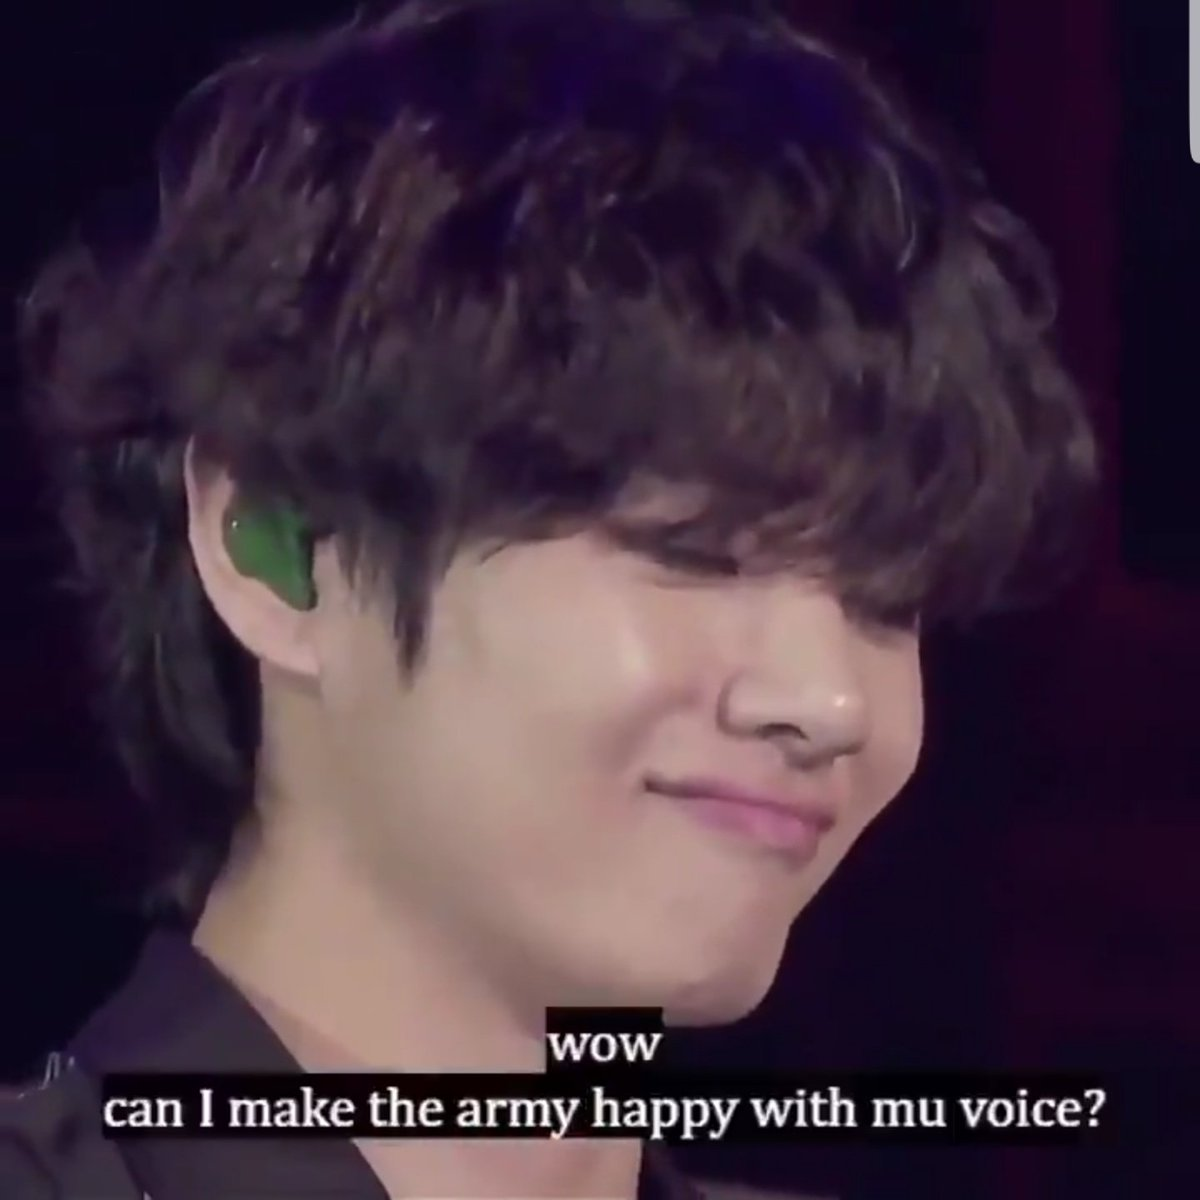 Can we please trend #TaehyungBestSinger and lets show him that his voice are truly special and unique that always touches people's heart and soul. Lets post some appreciation tweets abt his voice and shower him with love he deserve!  <br>http://pic.twitter.com/wngX5Li89E